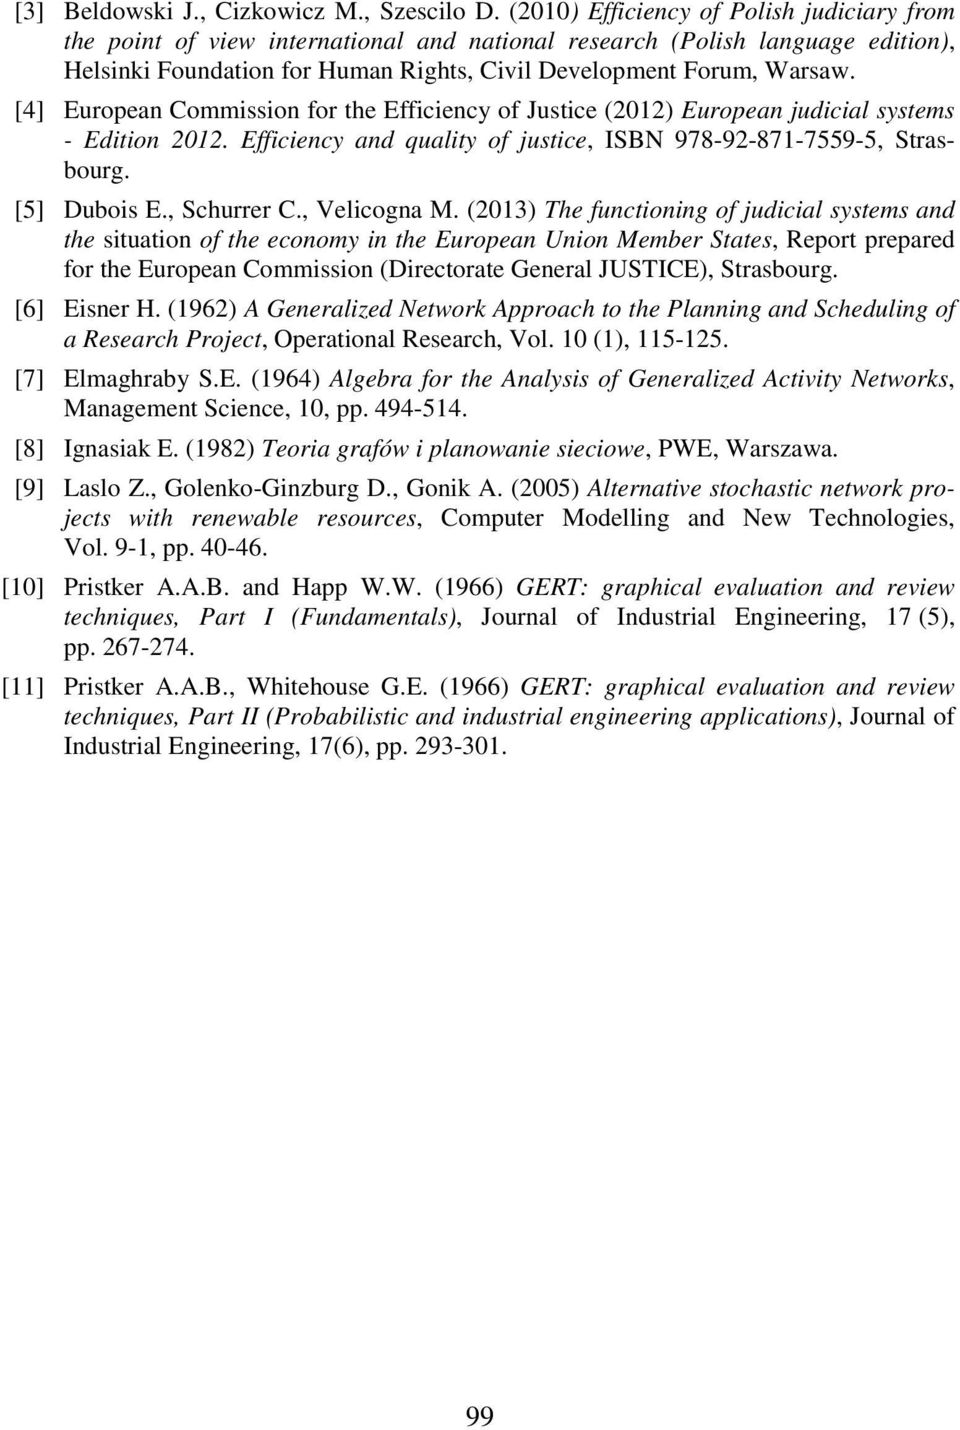 [4] European Commission for the Efficiency of Justice (202) European judicial systems - Edition 202. Efficiency and uality of justice, ISBN 978-92-87-7559-5, Strasbourg. [5] Dubois E., Schurrer C.